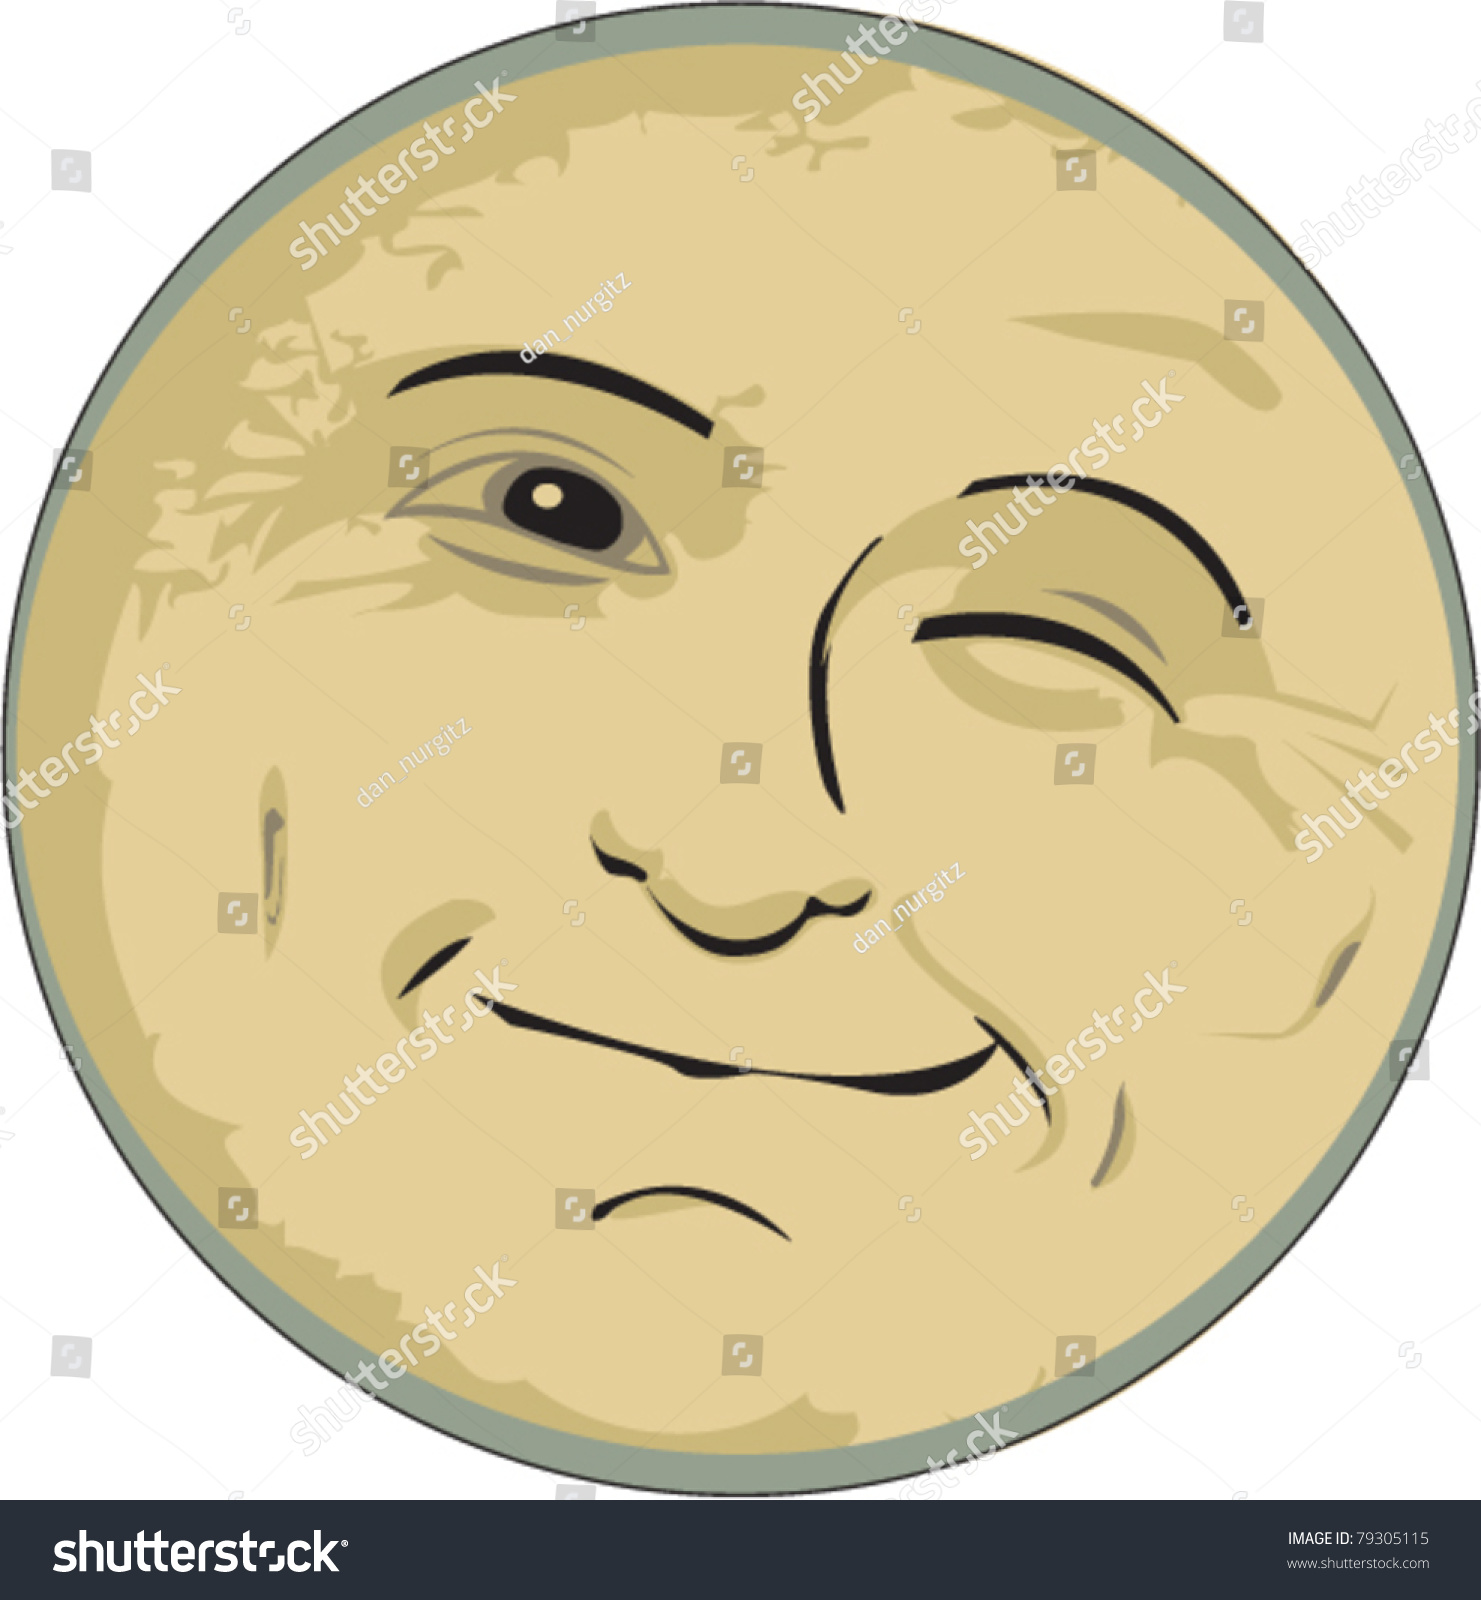 man in the moon clipart - photo #46